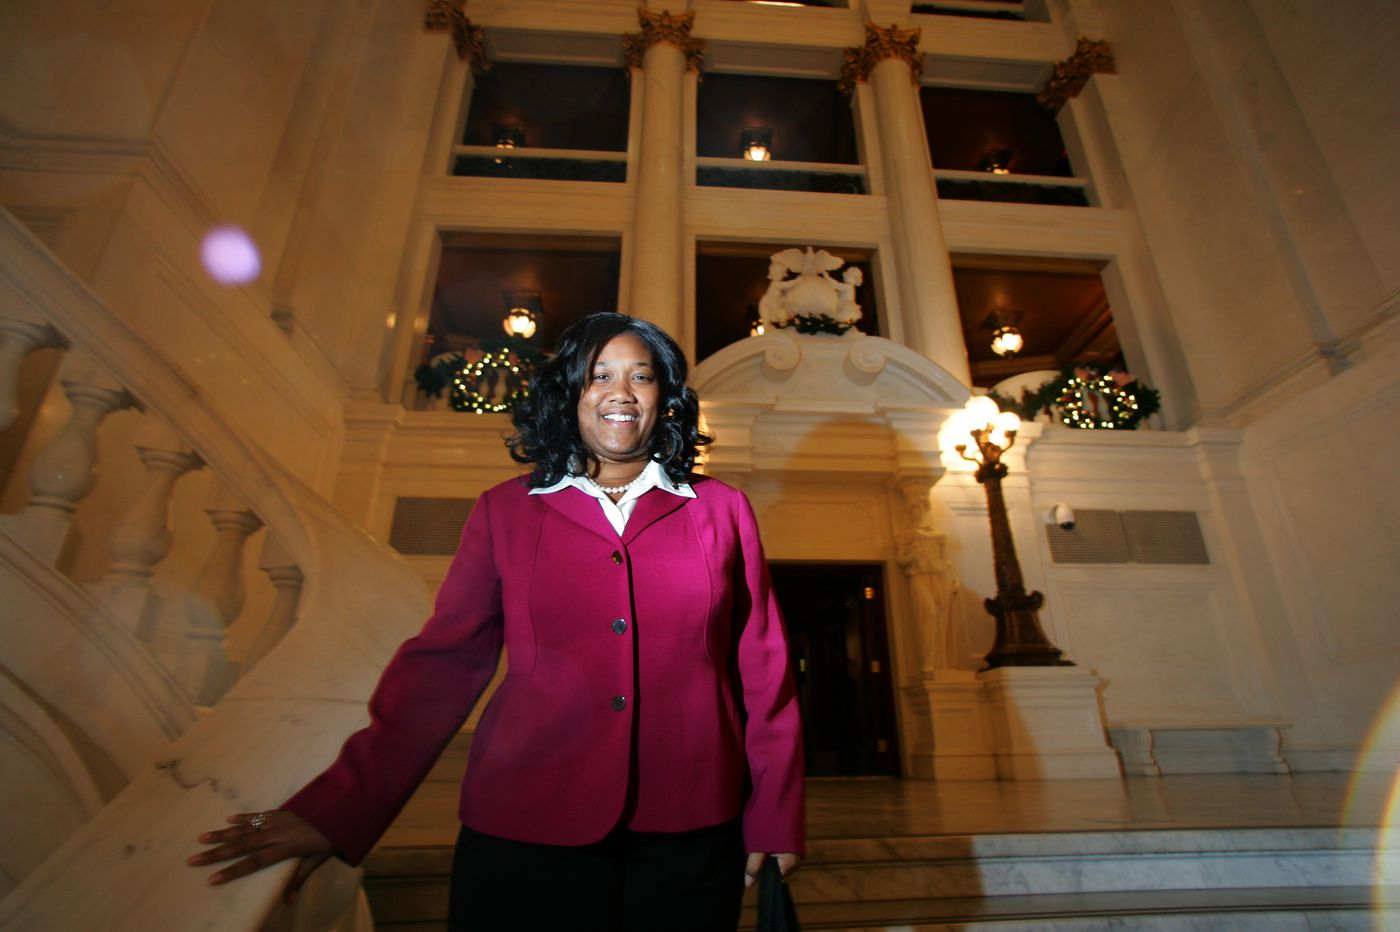 Prosecutor moves to force convicted Philly State Rep. Vanessa Brown to resign